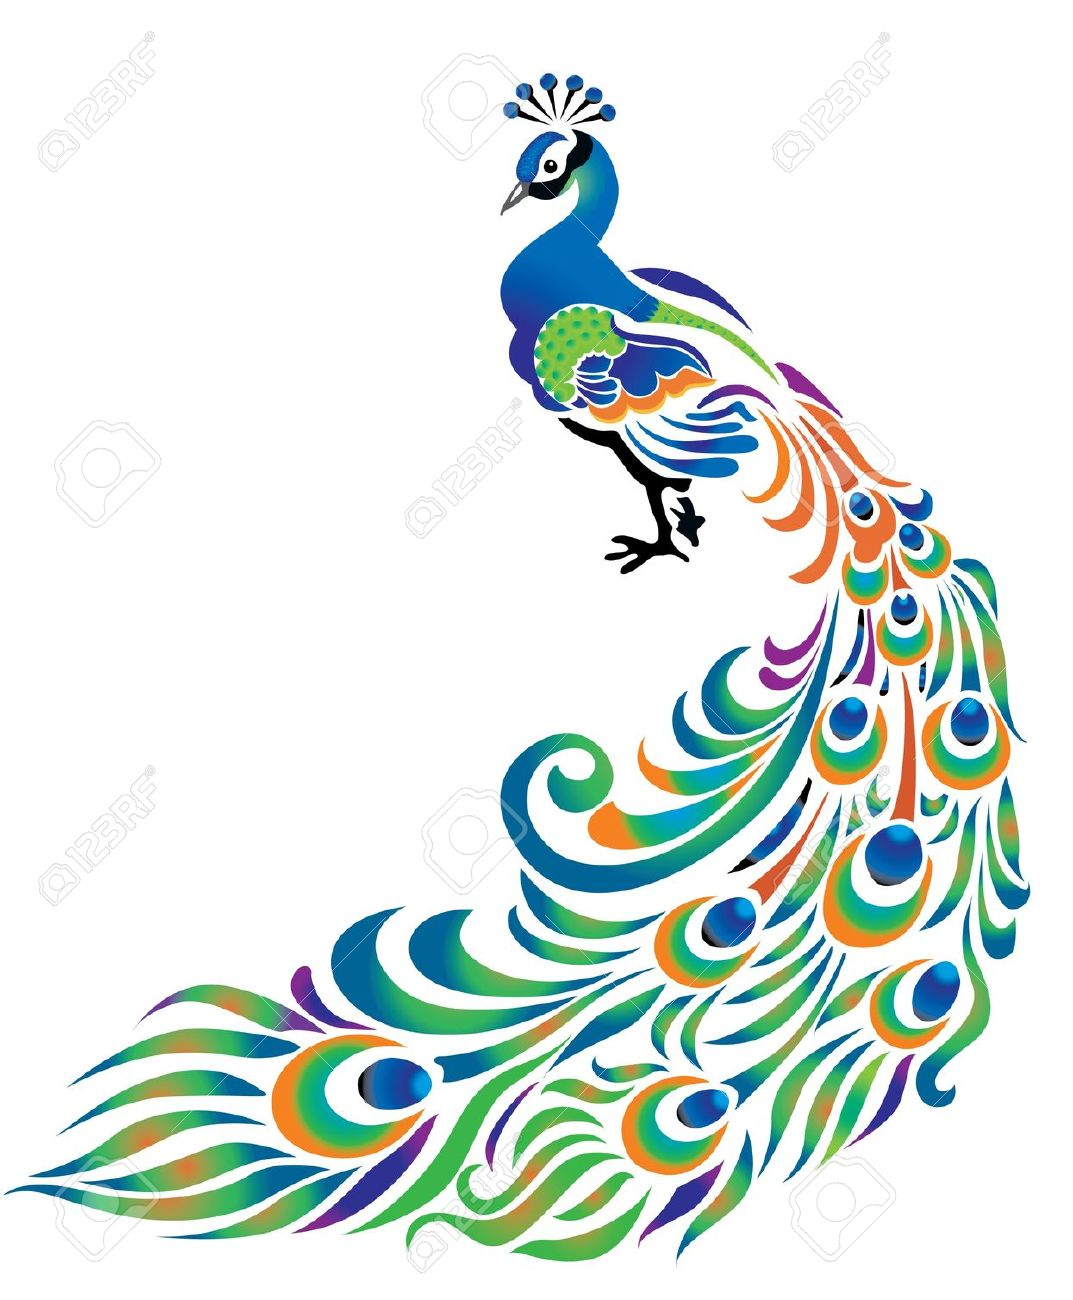 Peacock design clipart.